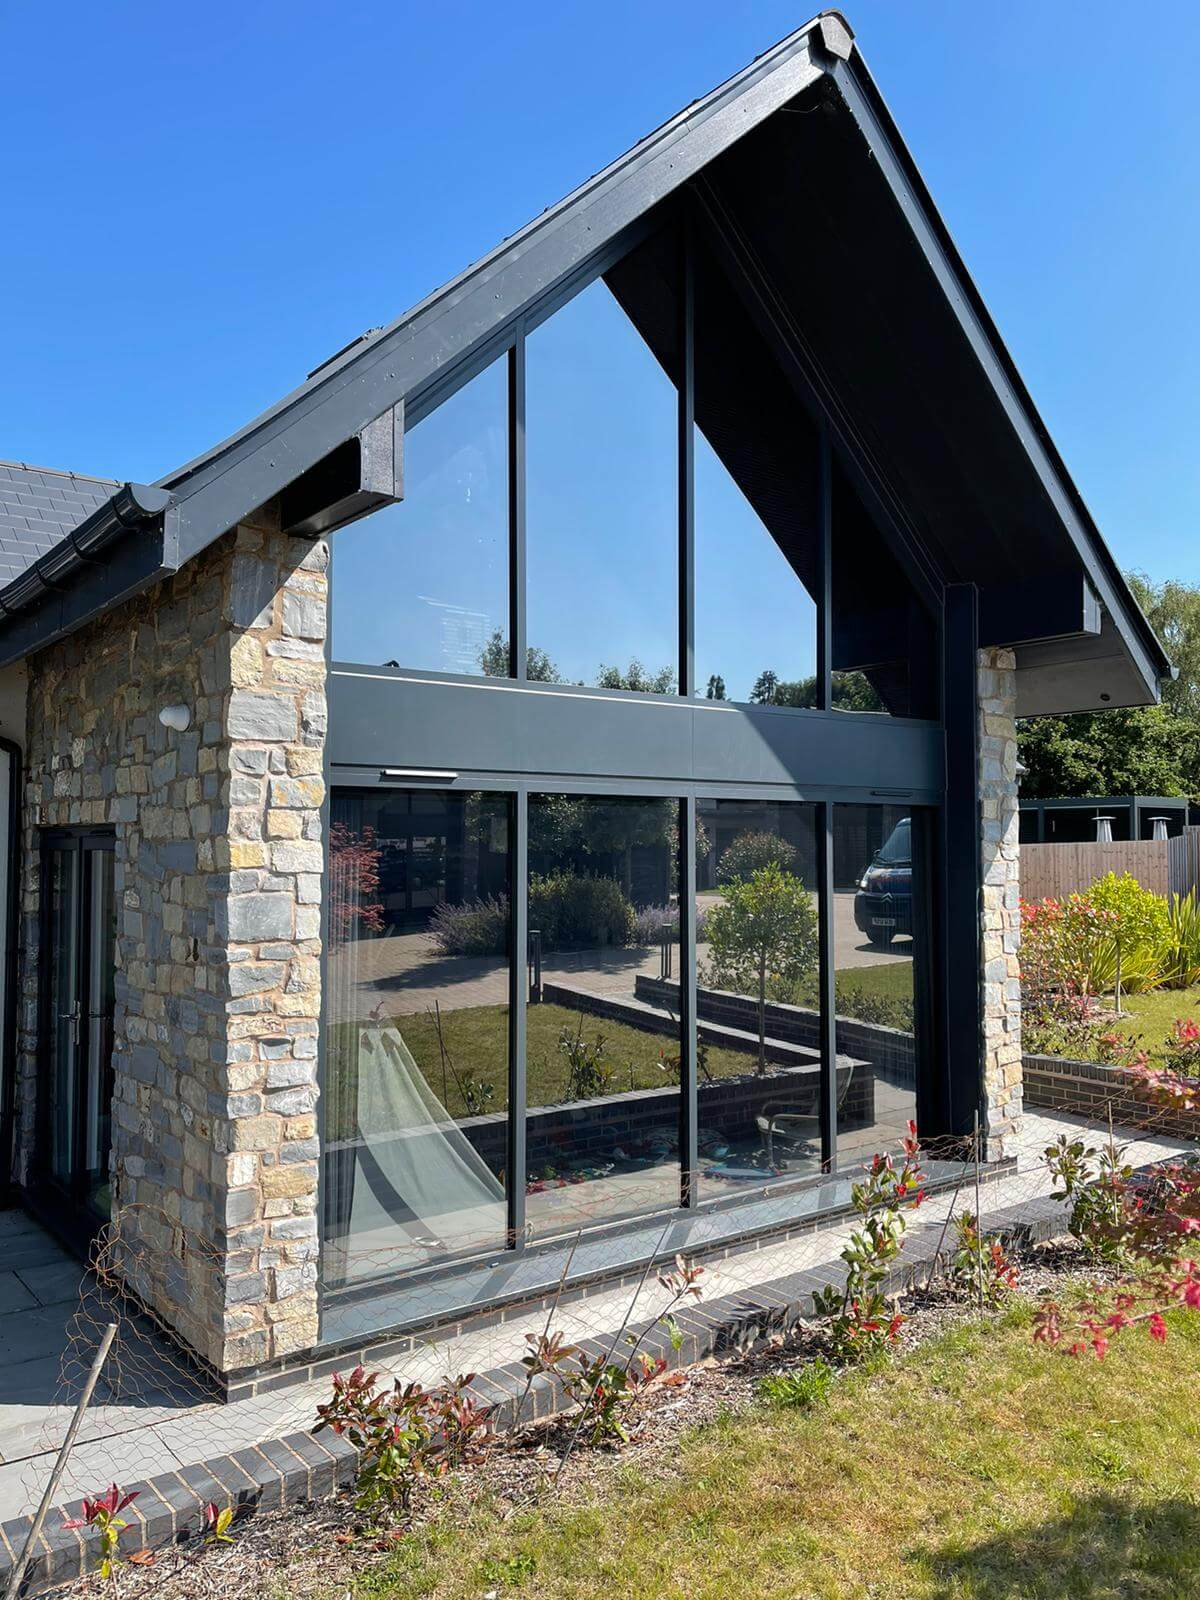 Glare Reduction Window Film on a Home